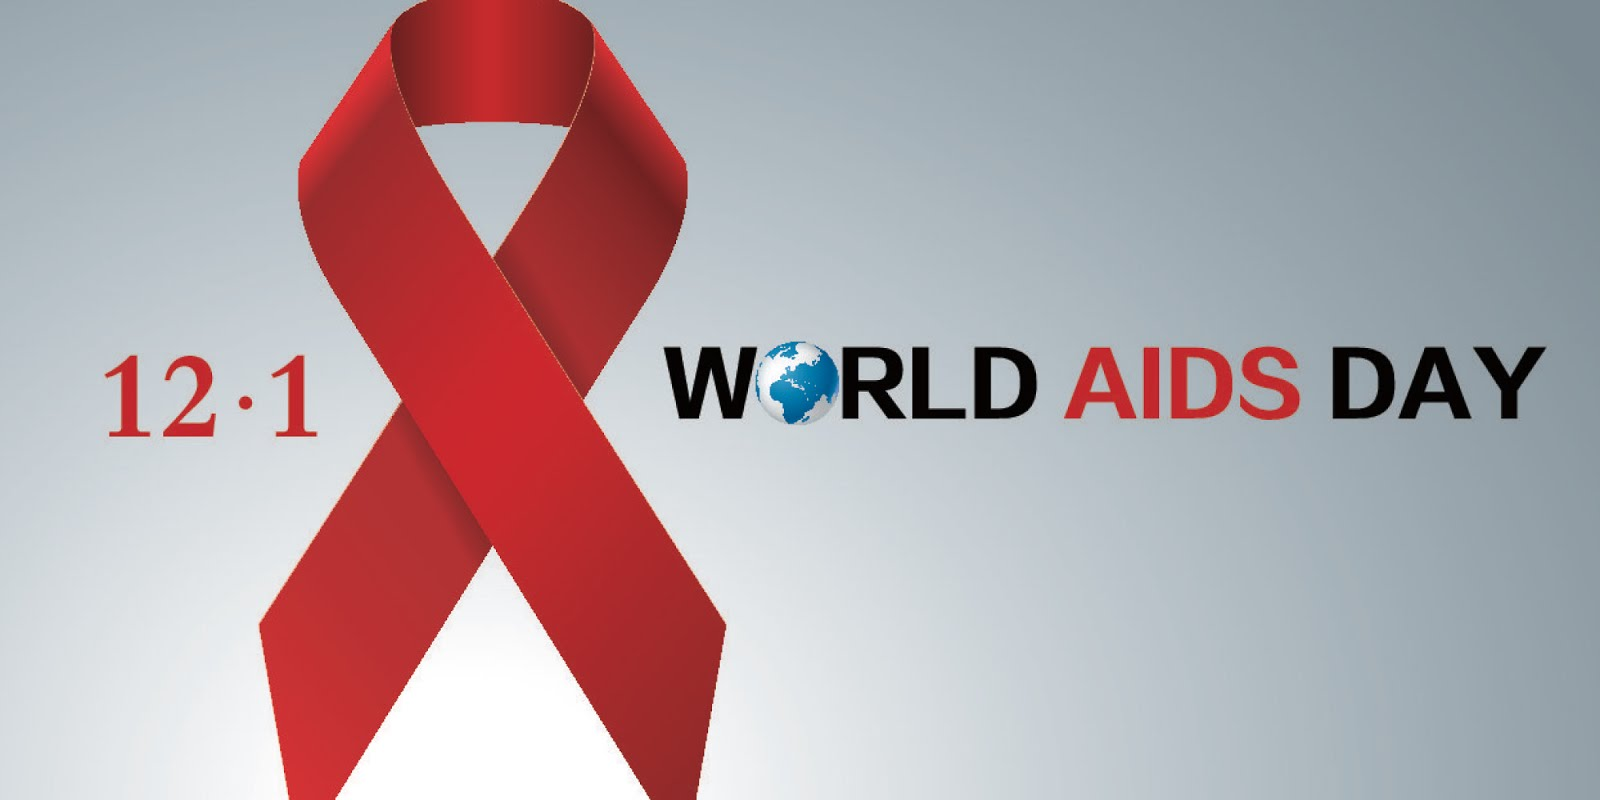 world aids day report World aids day is recognized around the globe on dec 1.